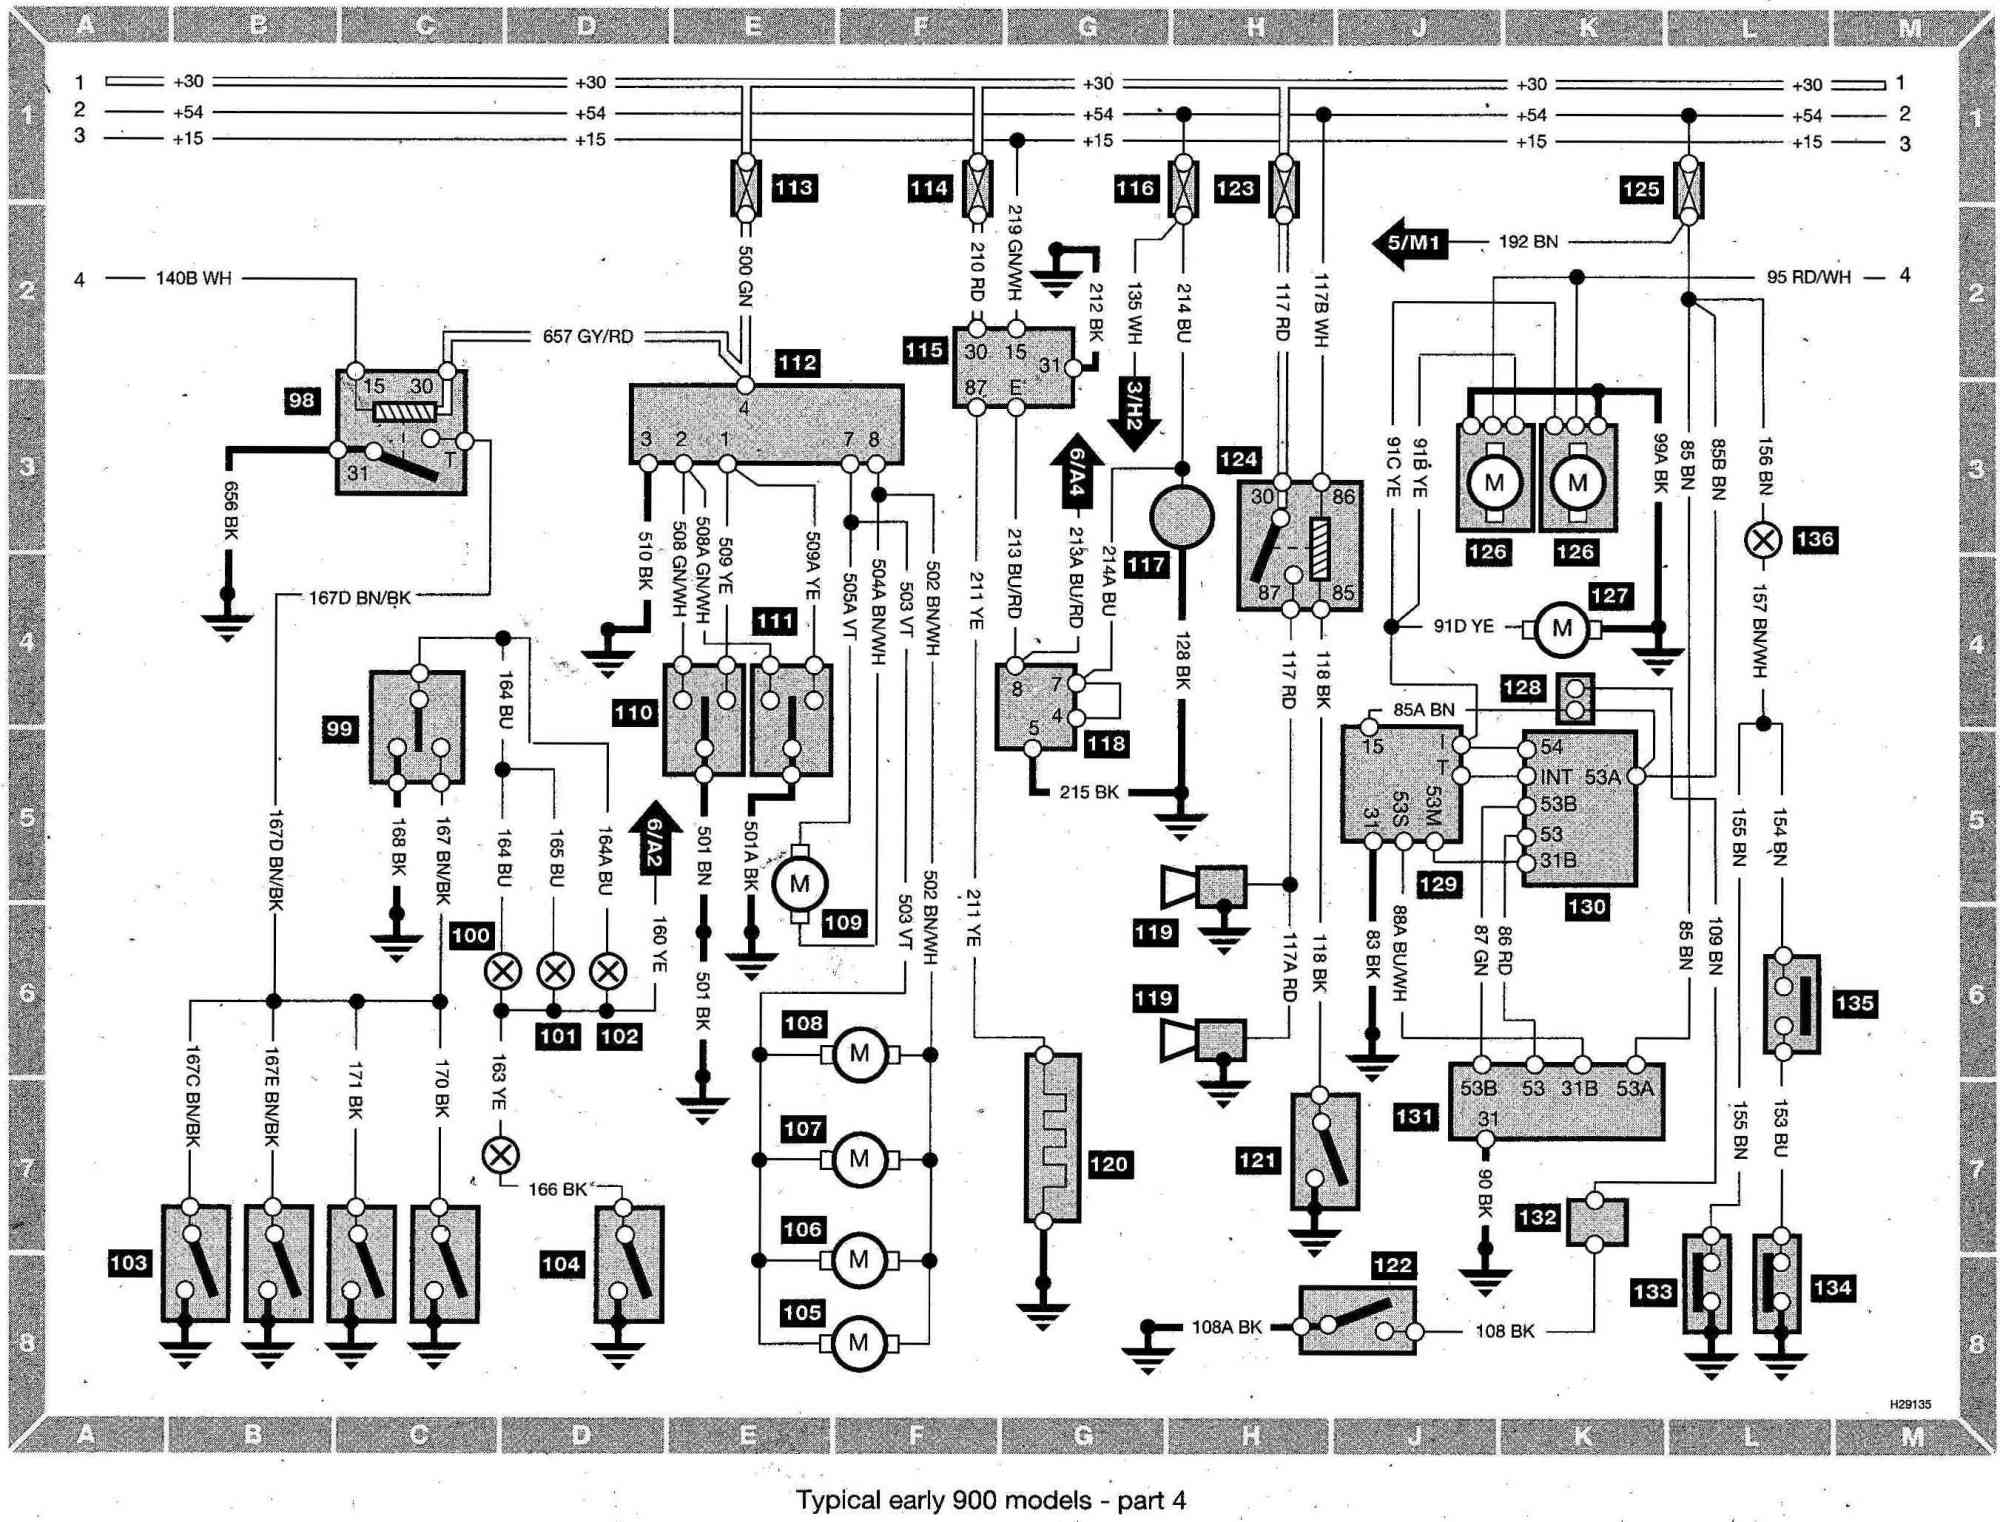 hight resolution of saab ng900 wiring diagram wiring diagram meta saab ng900 wiring diagram